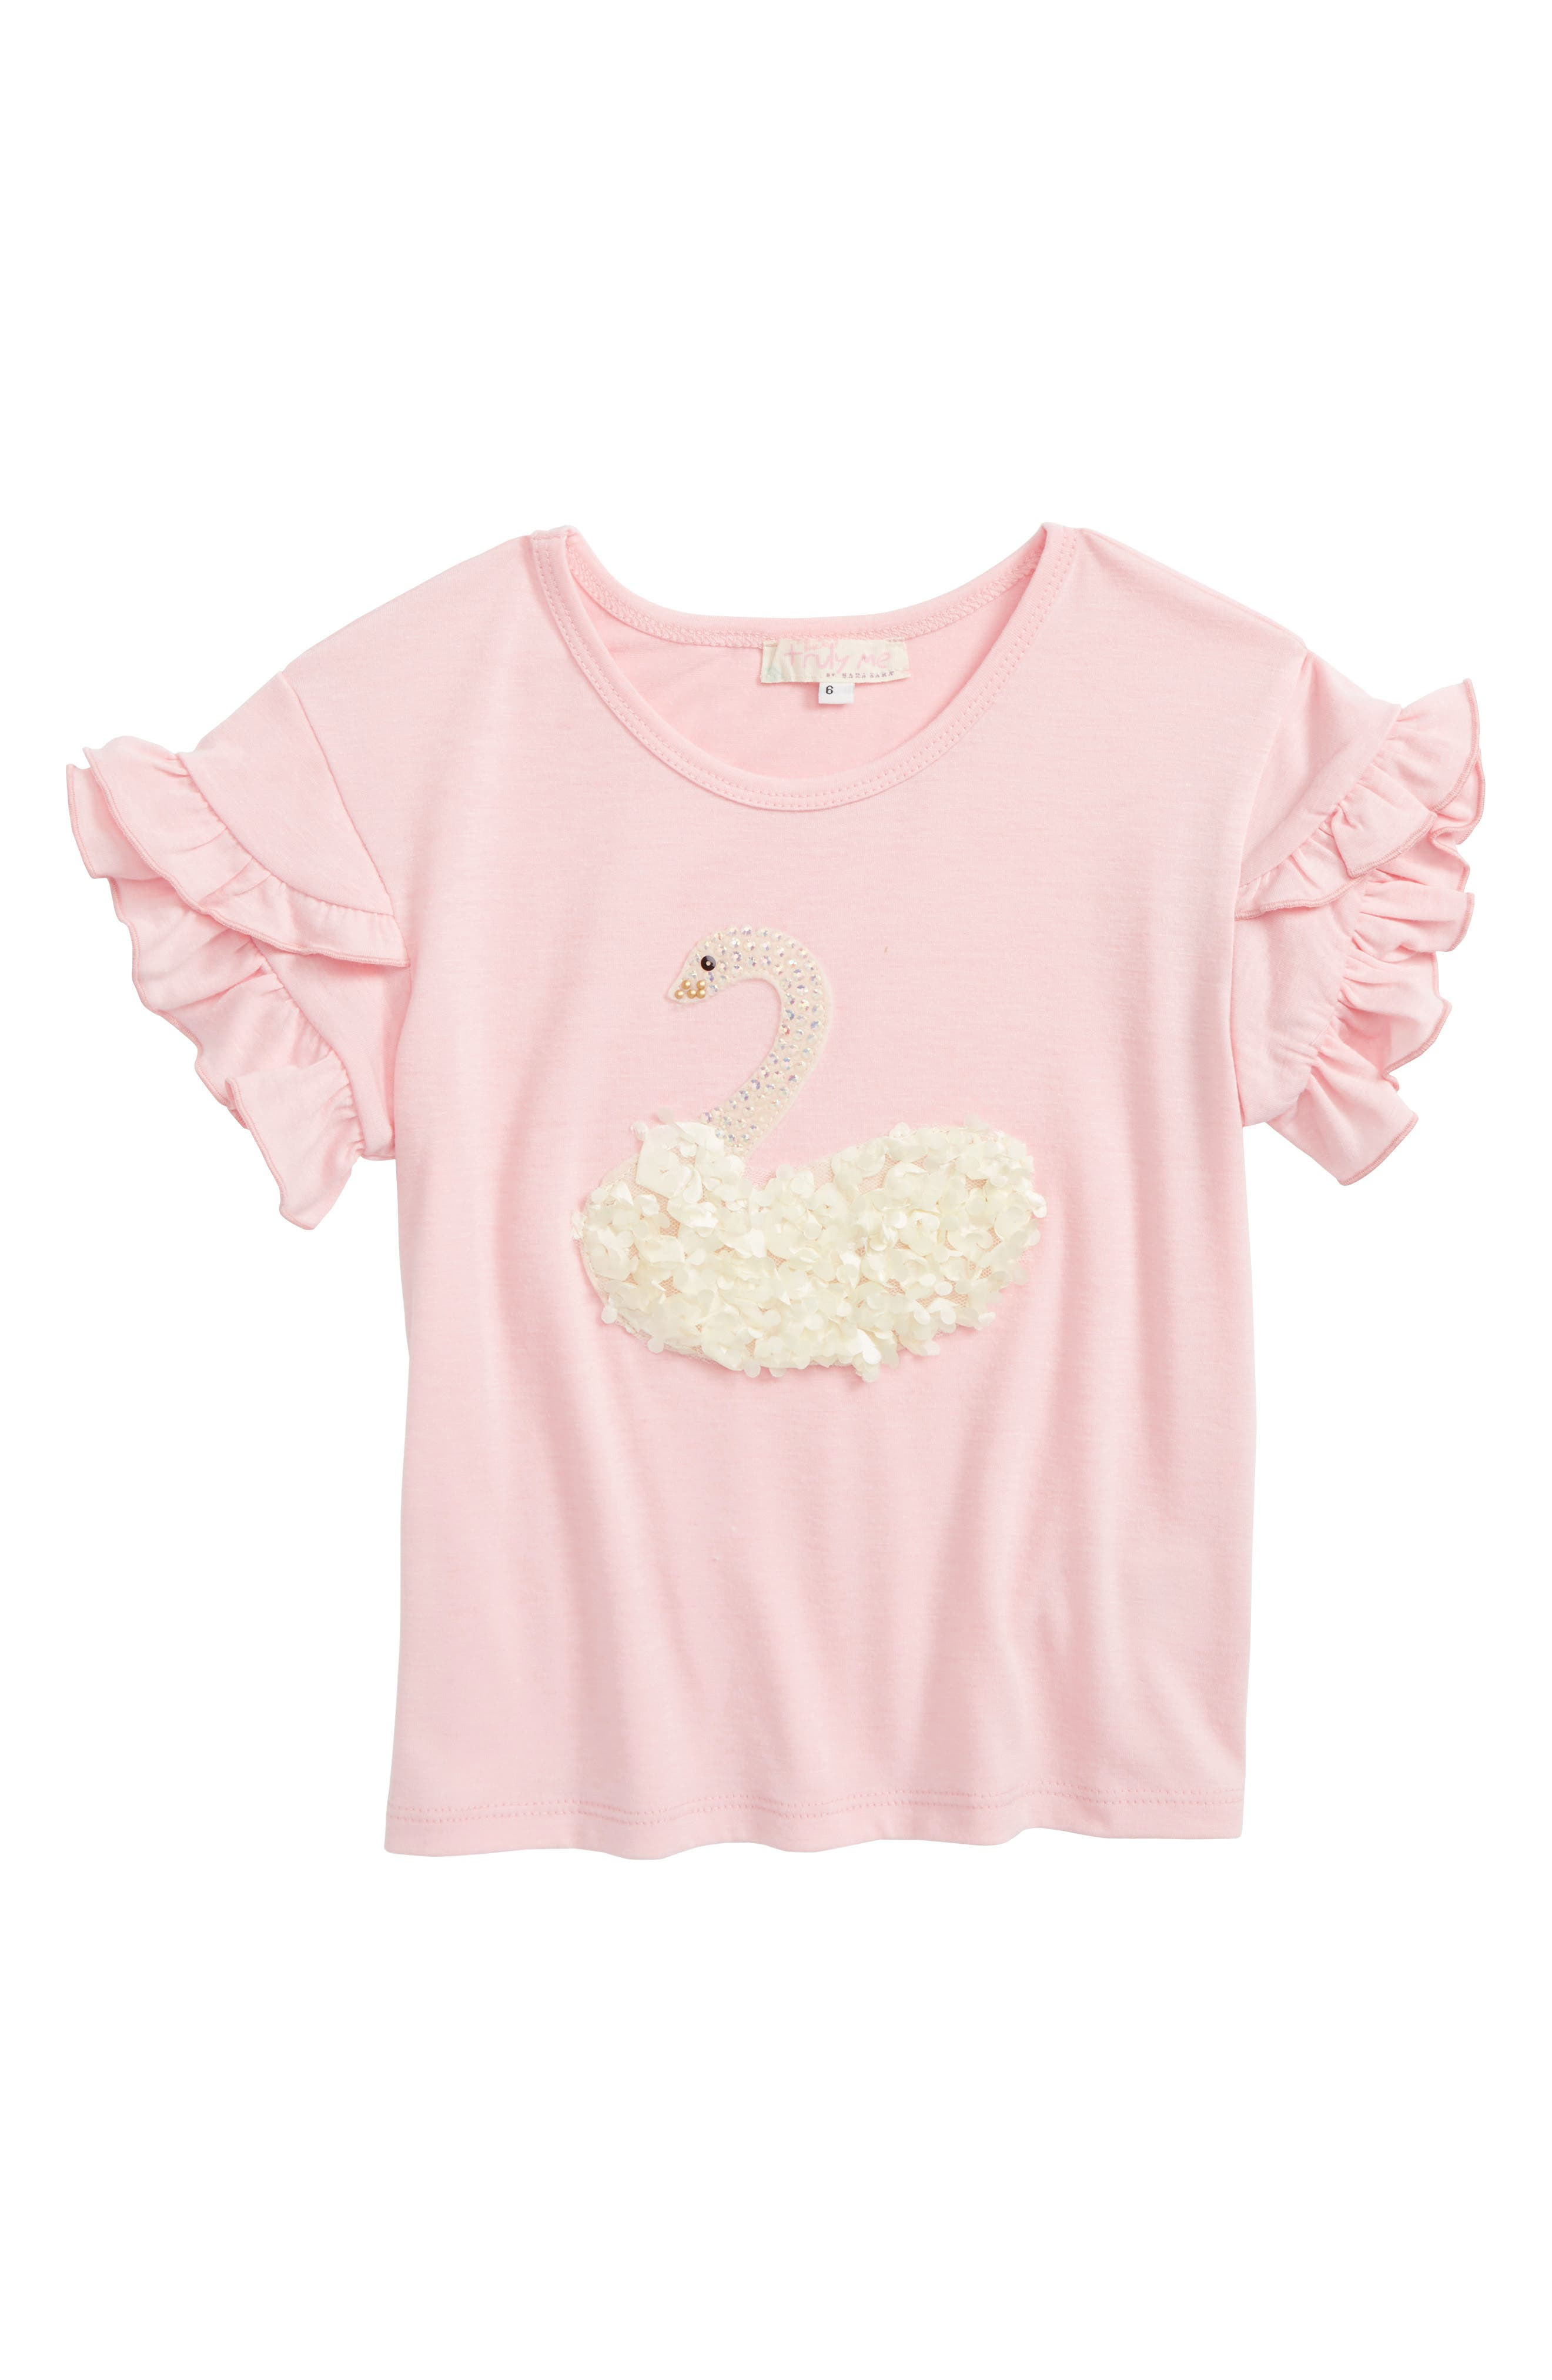 Truly Me Swan Appliqué Tee (Toddler Girls & Little Girls)